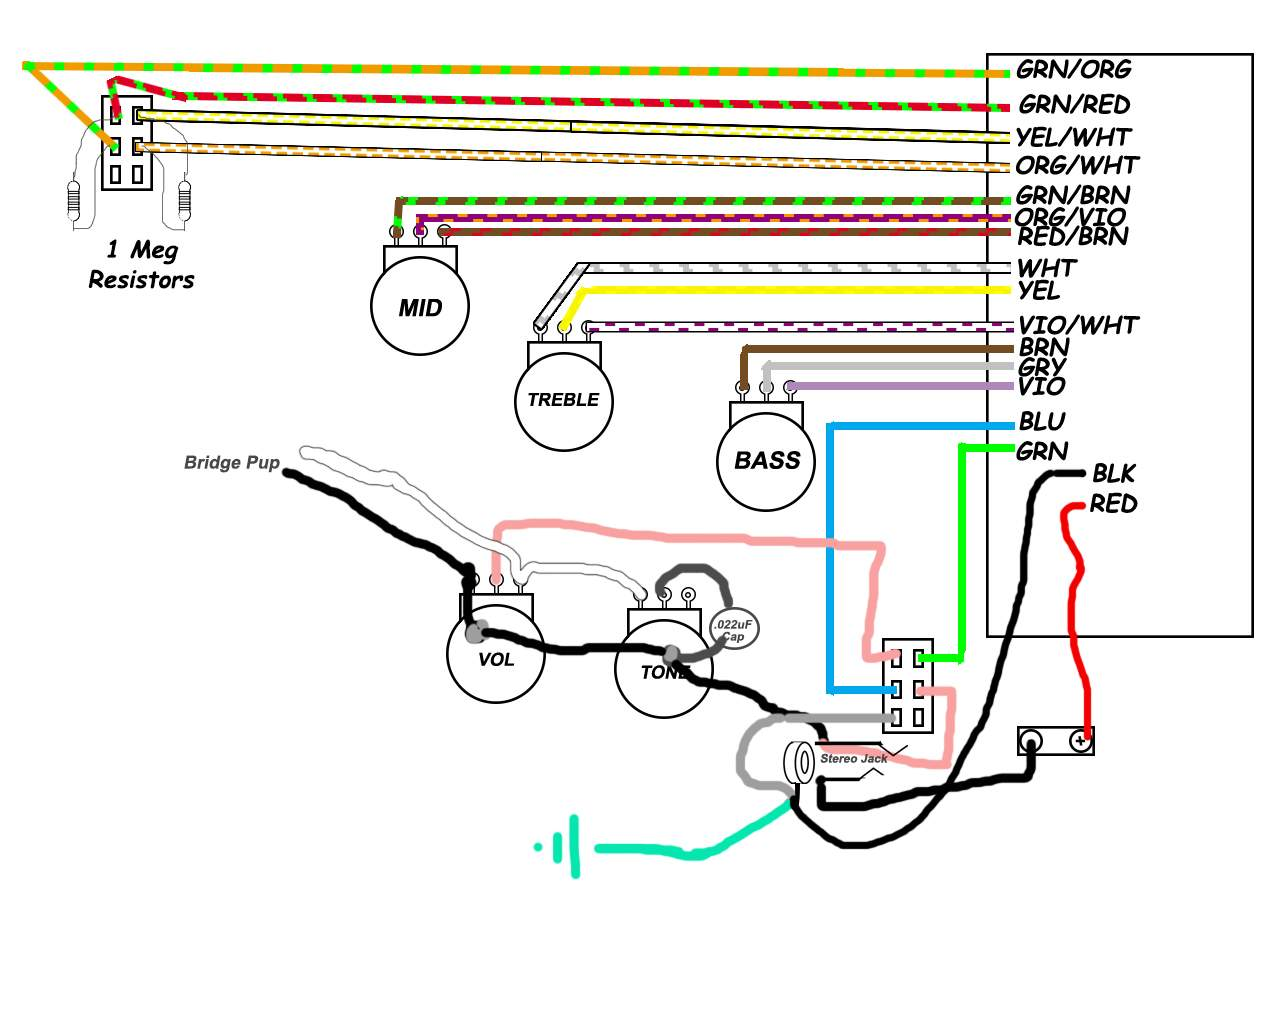 hight resolution of aguilar opb3 wiring diagram wiring diagram dat aguilar obp 2 preamp wiring diagram aguilar wiring diagram